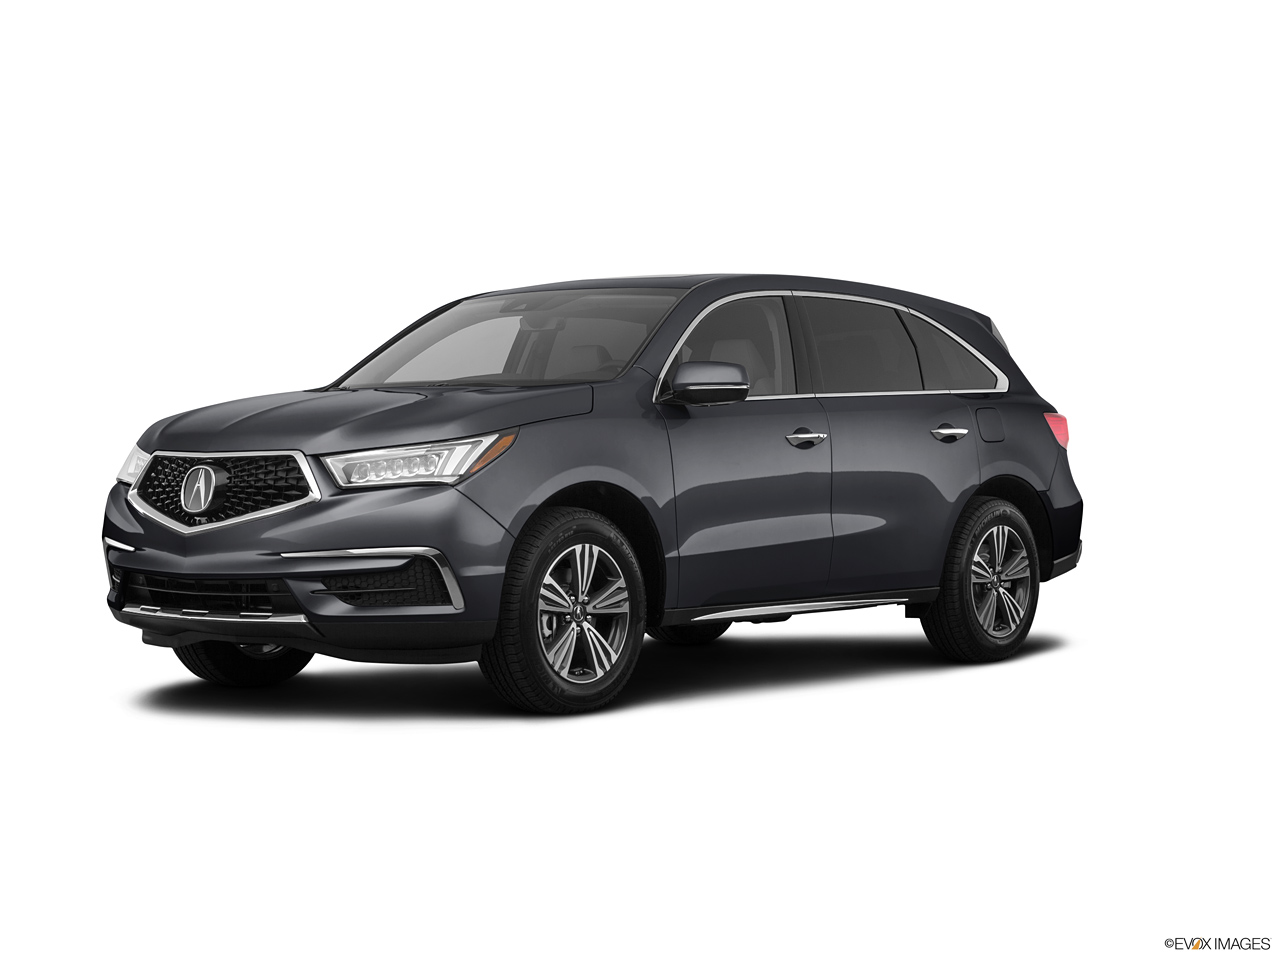 Car Pictures List For Acura MDX 2020 3.5L V6 AWD Advance